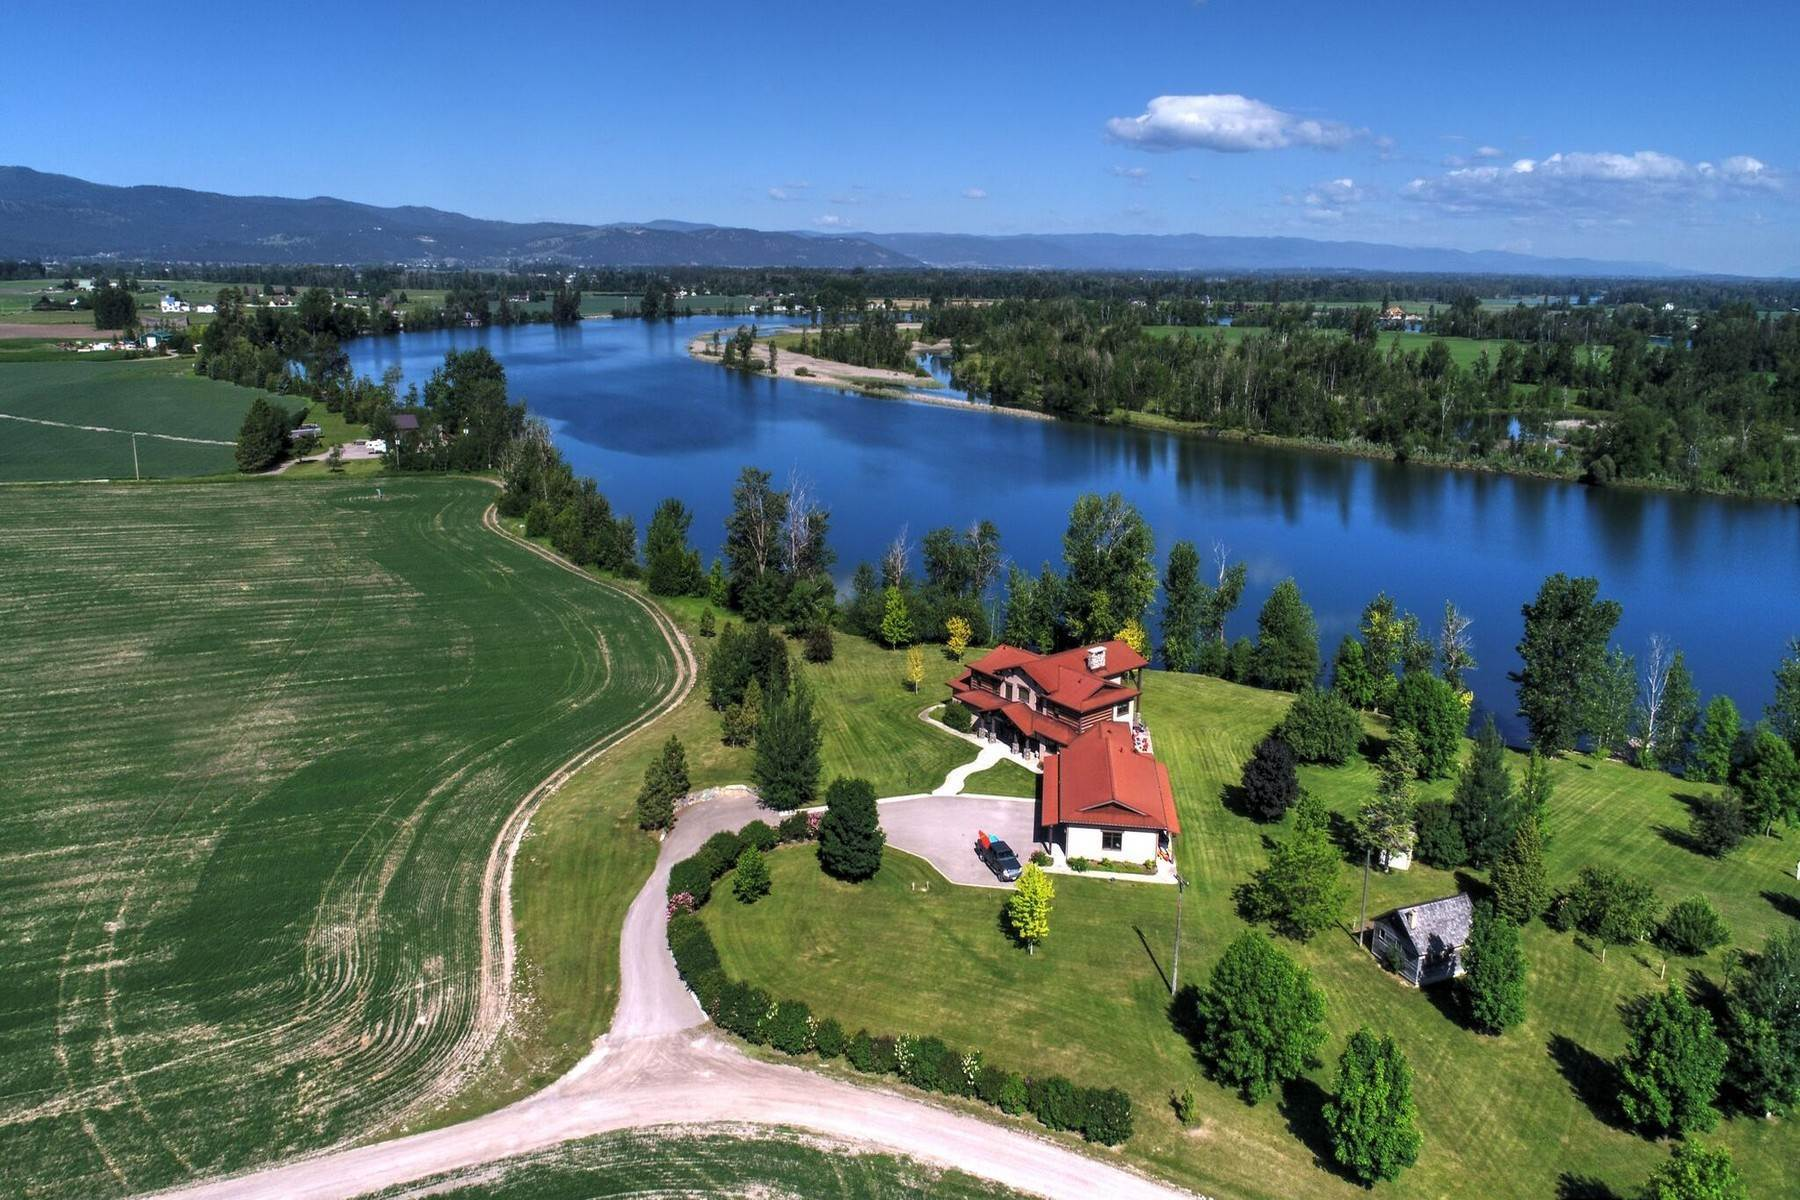 Property for Sale at 2239 Lower Valley Road Kalispell, Montana 59901 United States